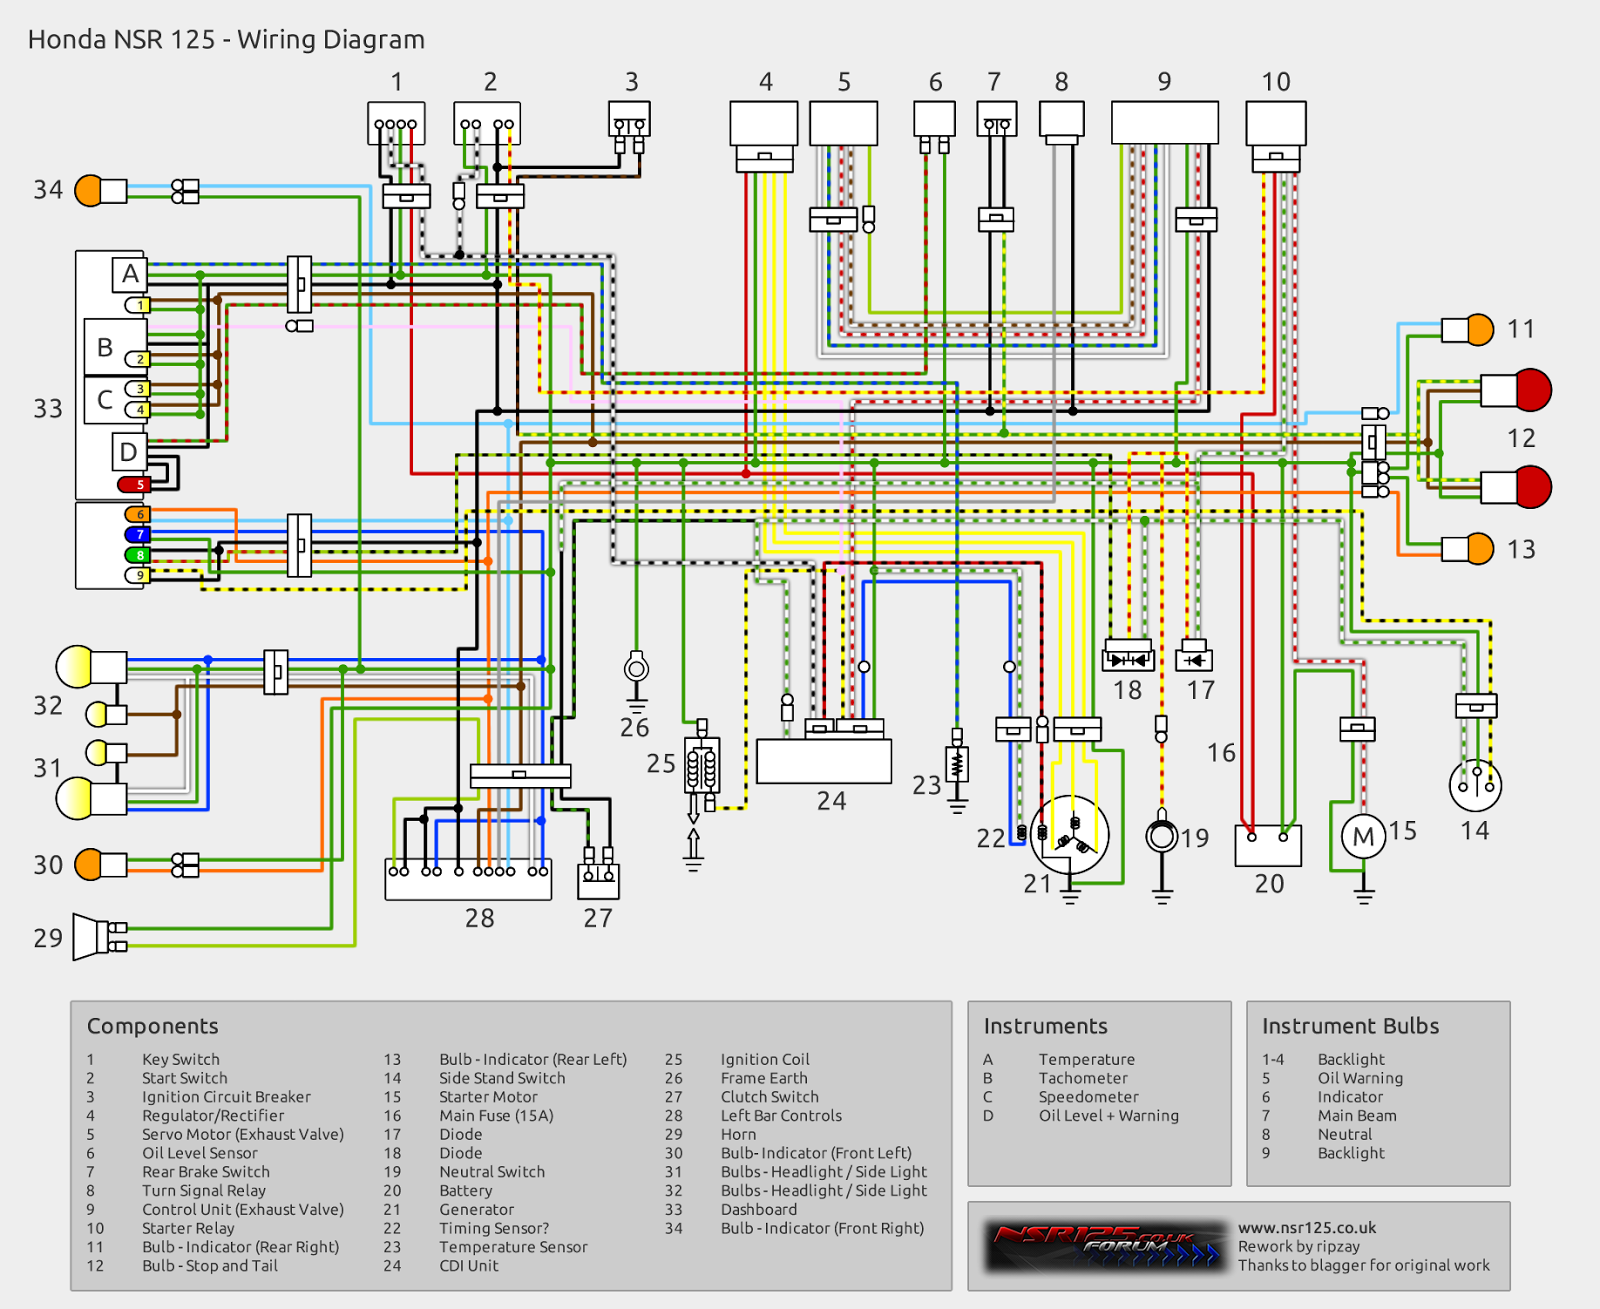 Nsr 250 Wiring Diagram Great Design Of Honda Salatiga Series Parts 1992